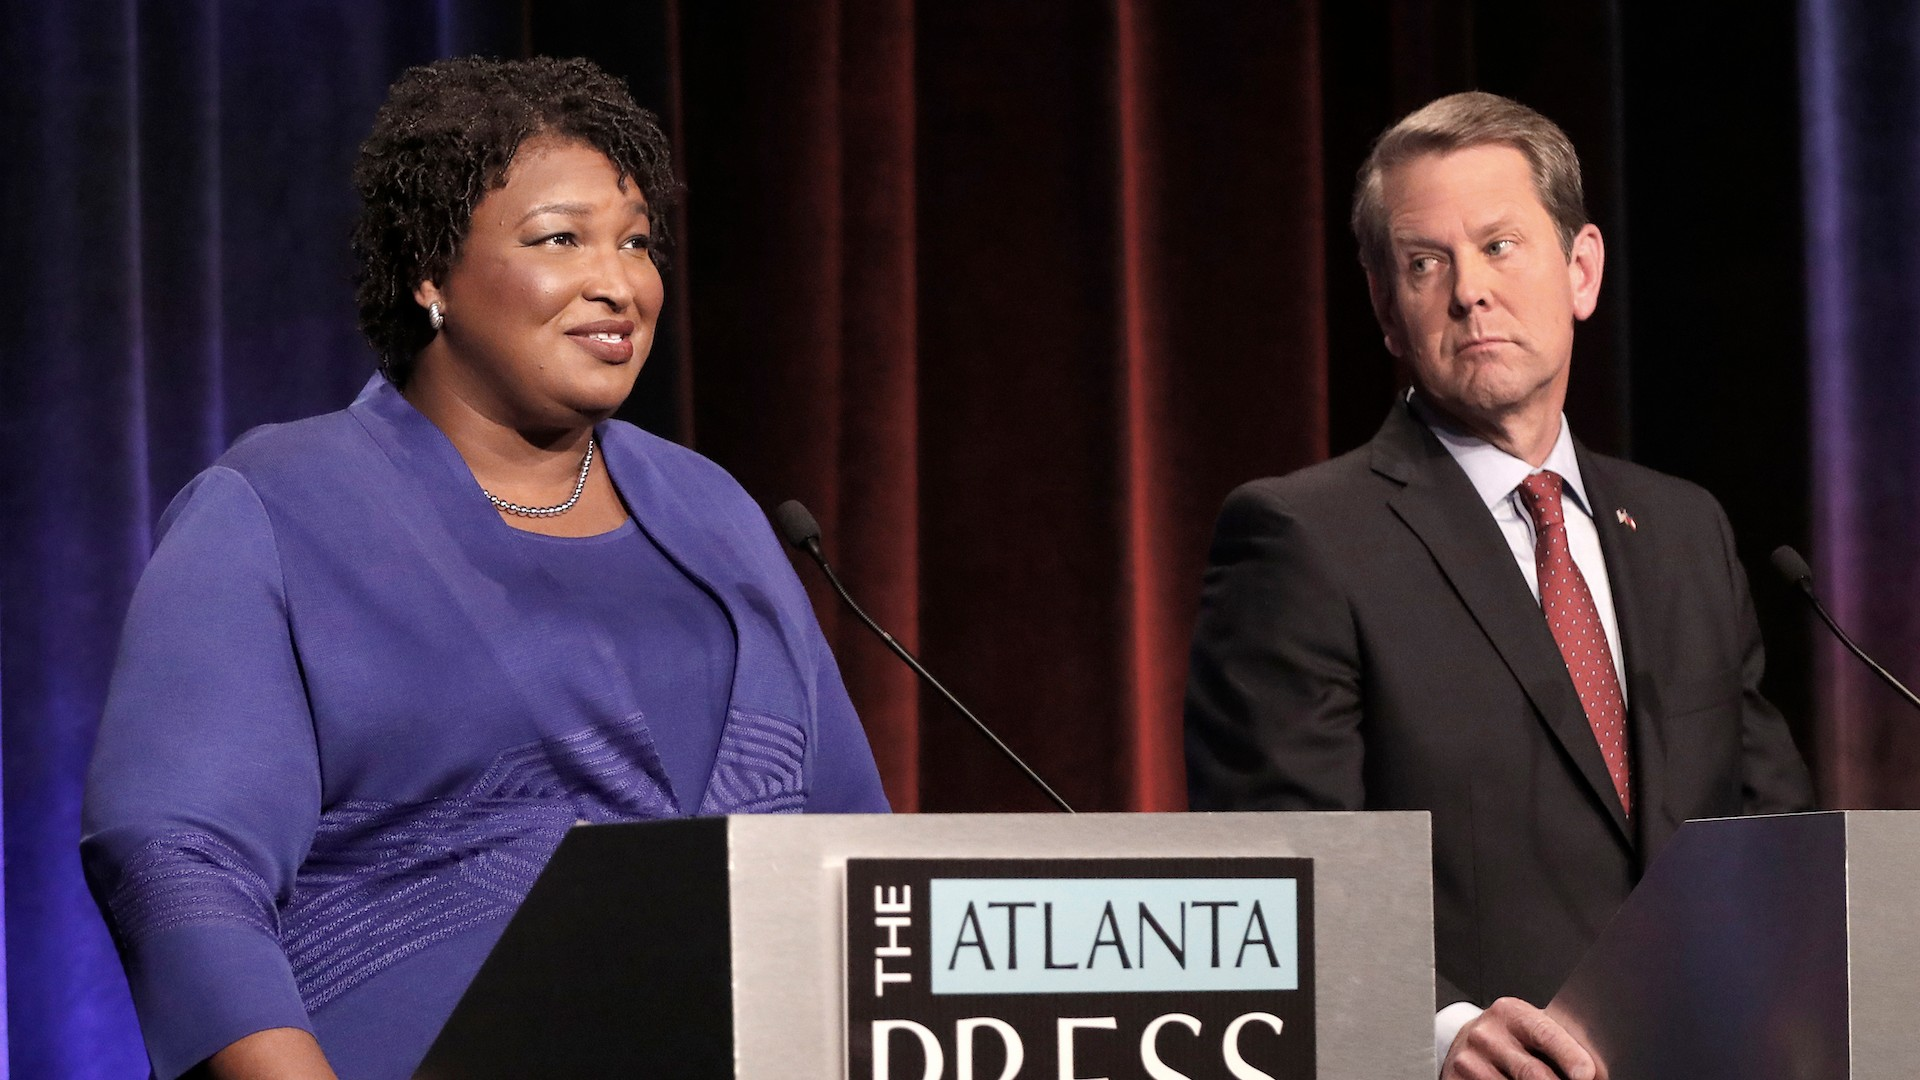 Some Georgia voting machines aren't counting votes for Democrat Stacy Abrams, NAACP says